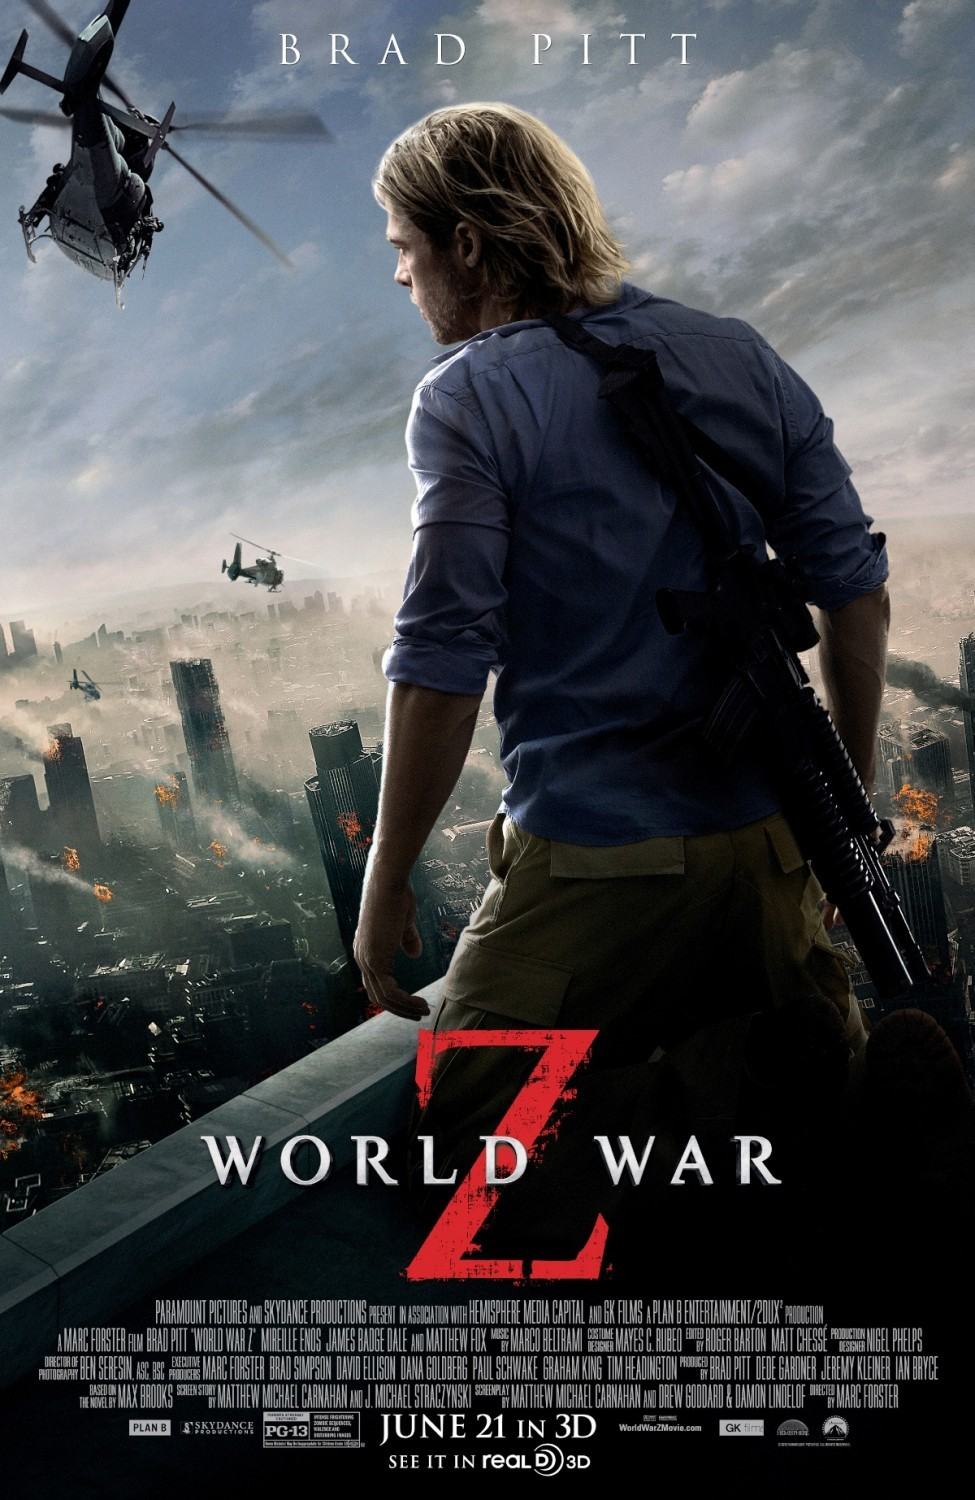 Poster of Paramount Pictures' World War Z (2013)